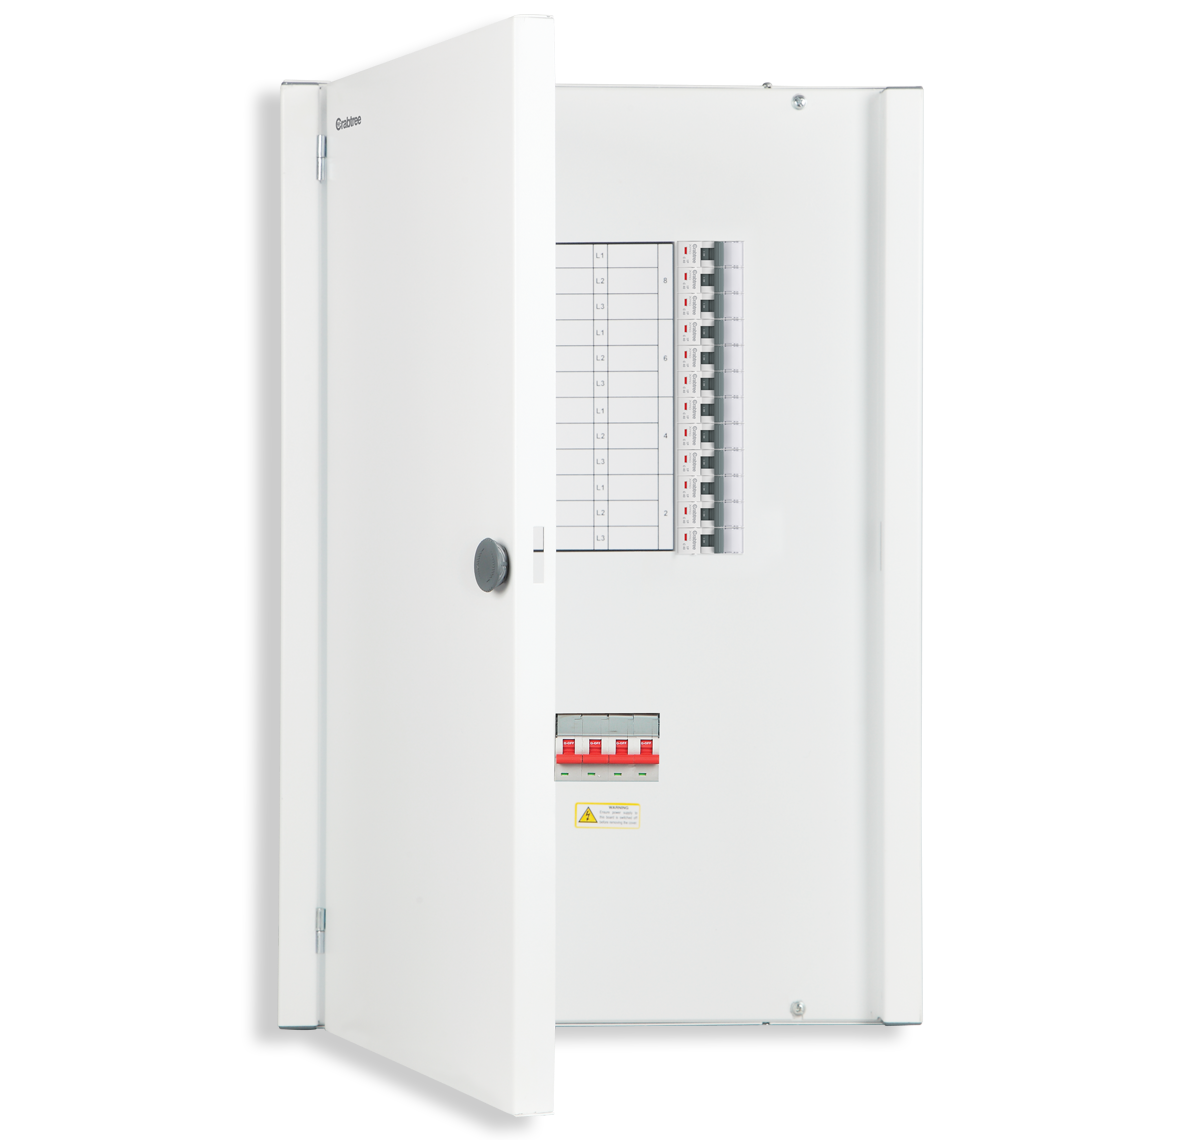 Crabtree - distribution board TPN-MCB 12 WAY